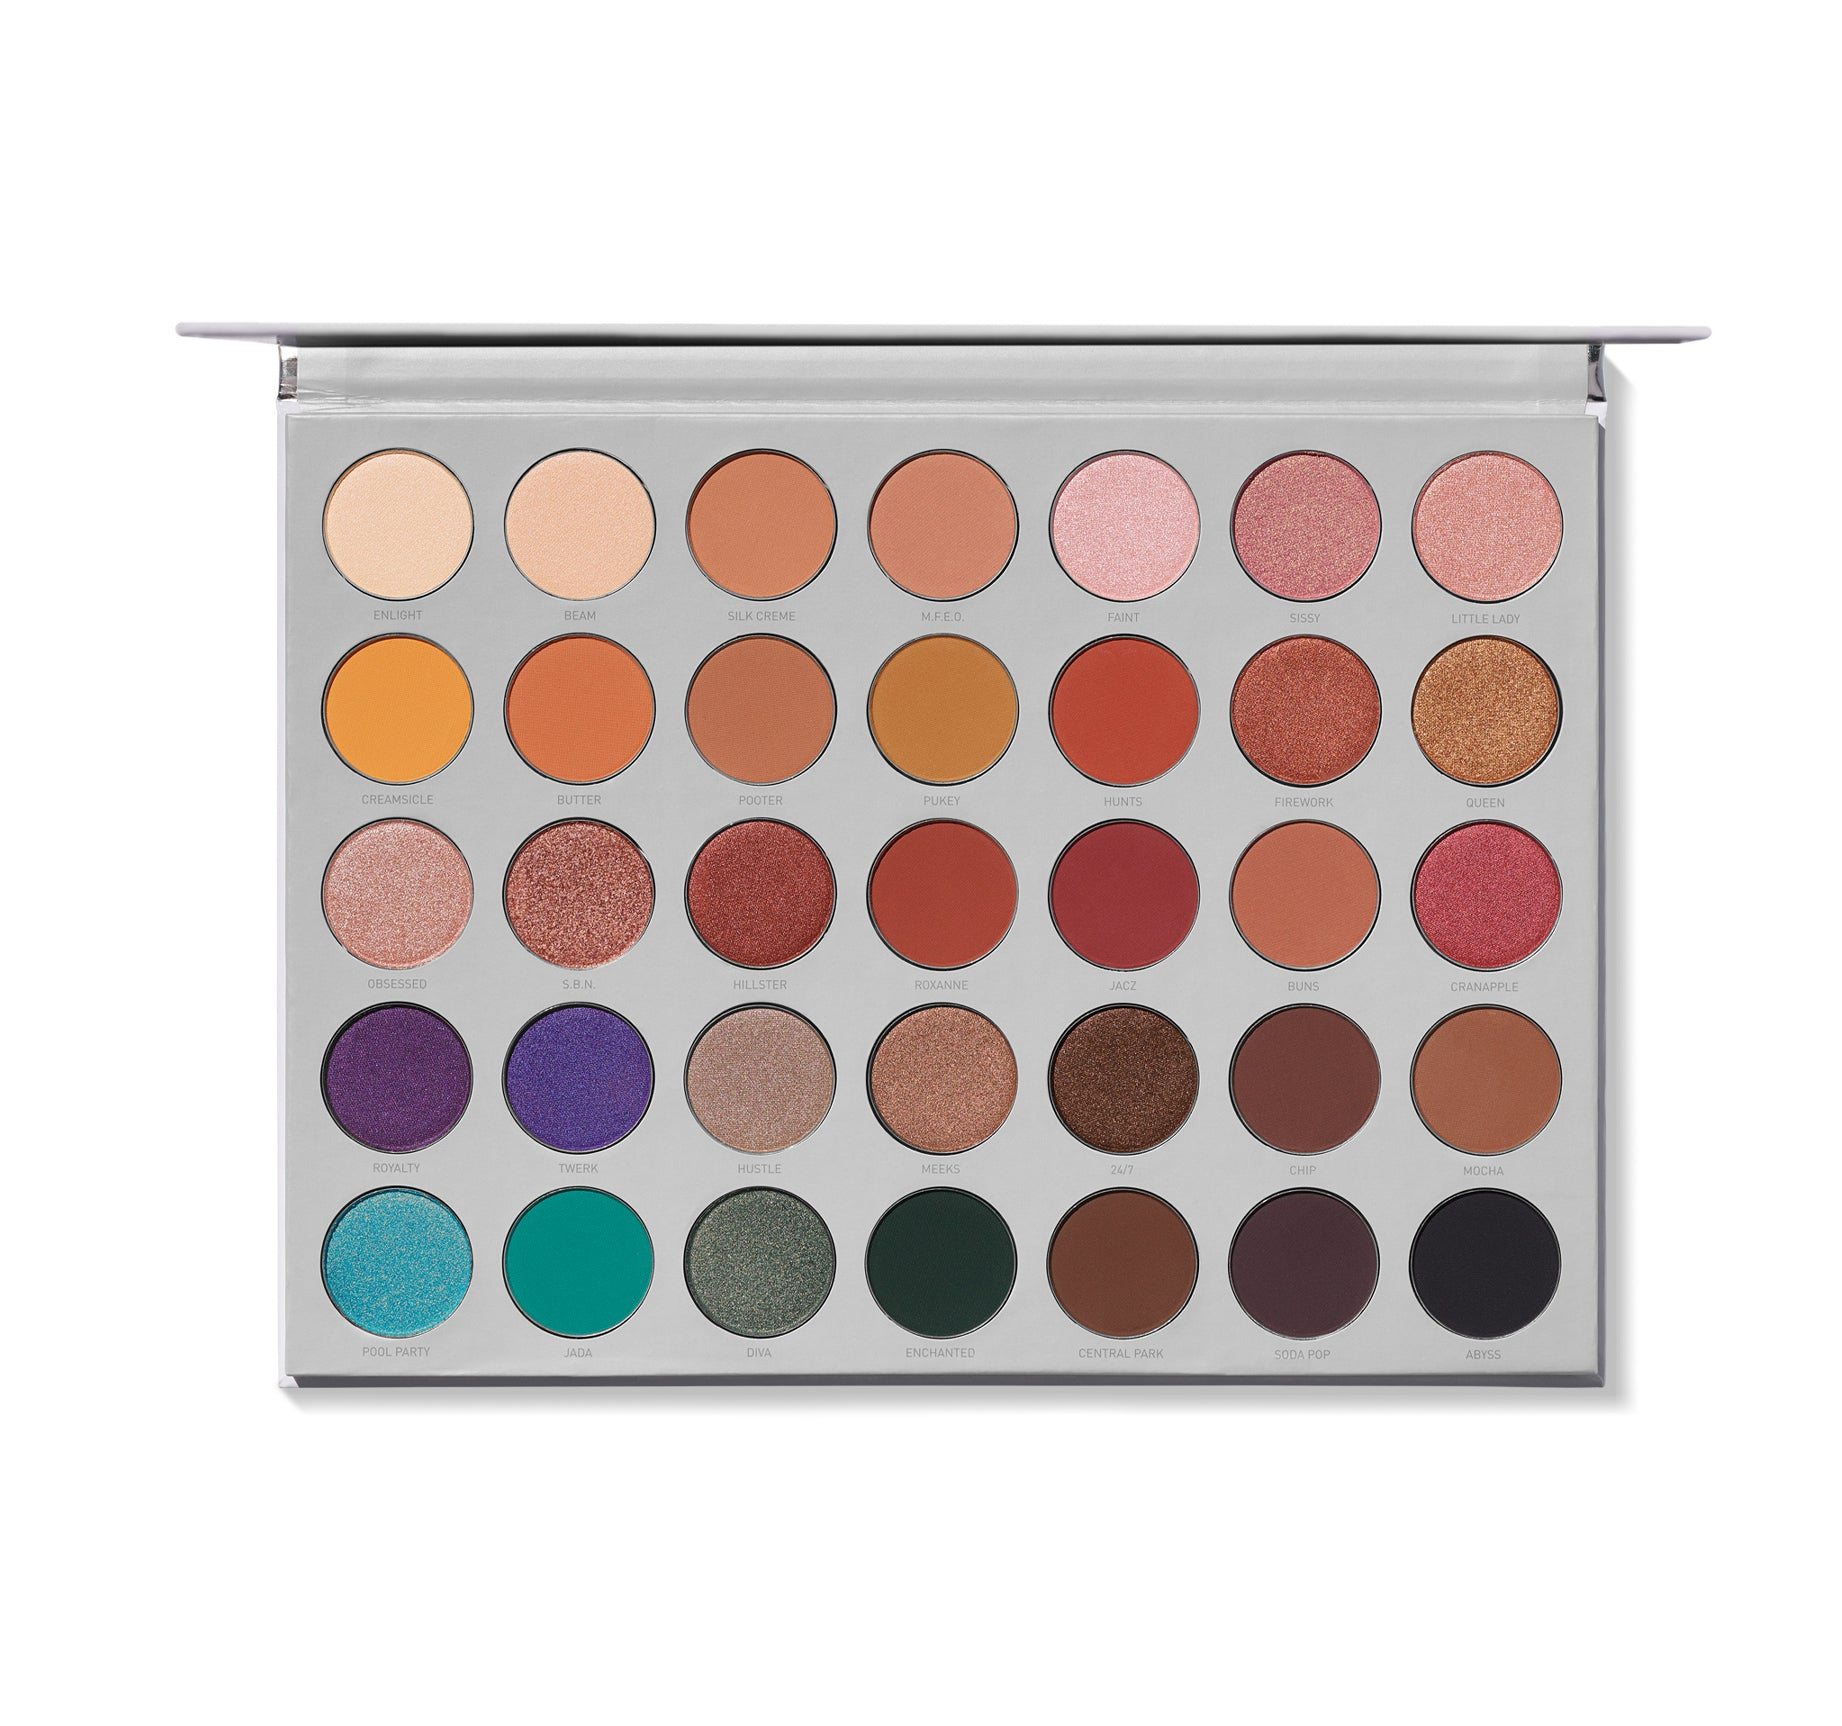 JACLYN HILL EYESHADOW PALETTE, view larger image